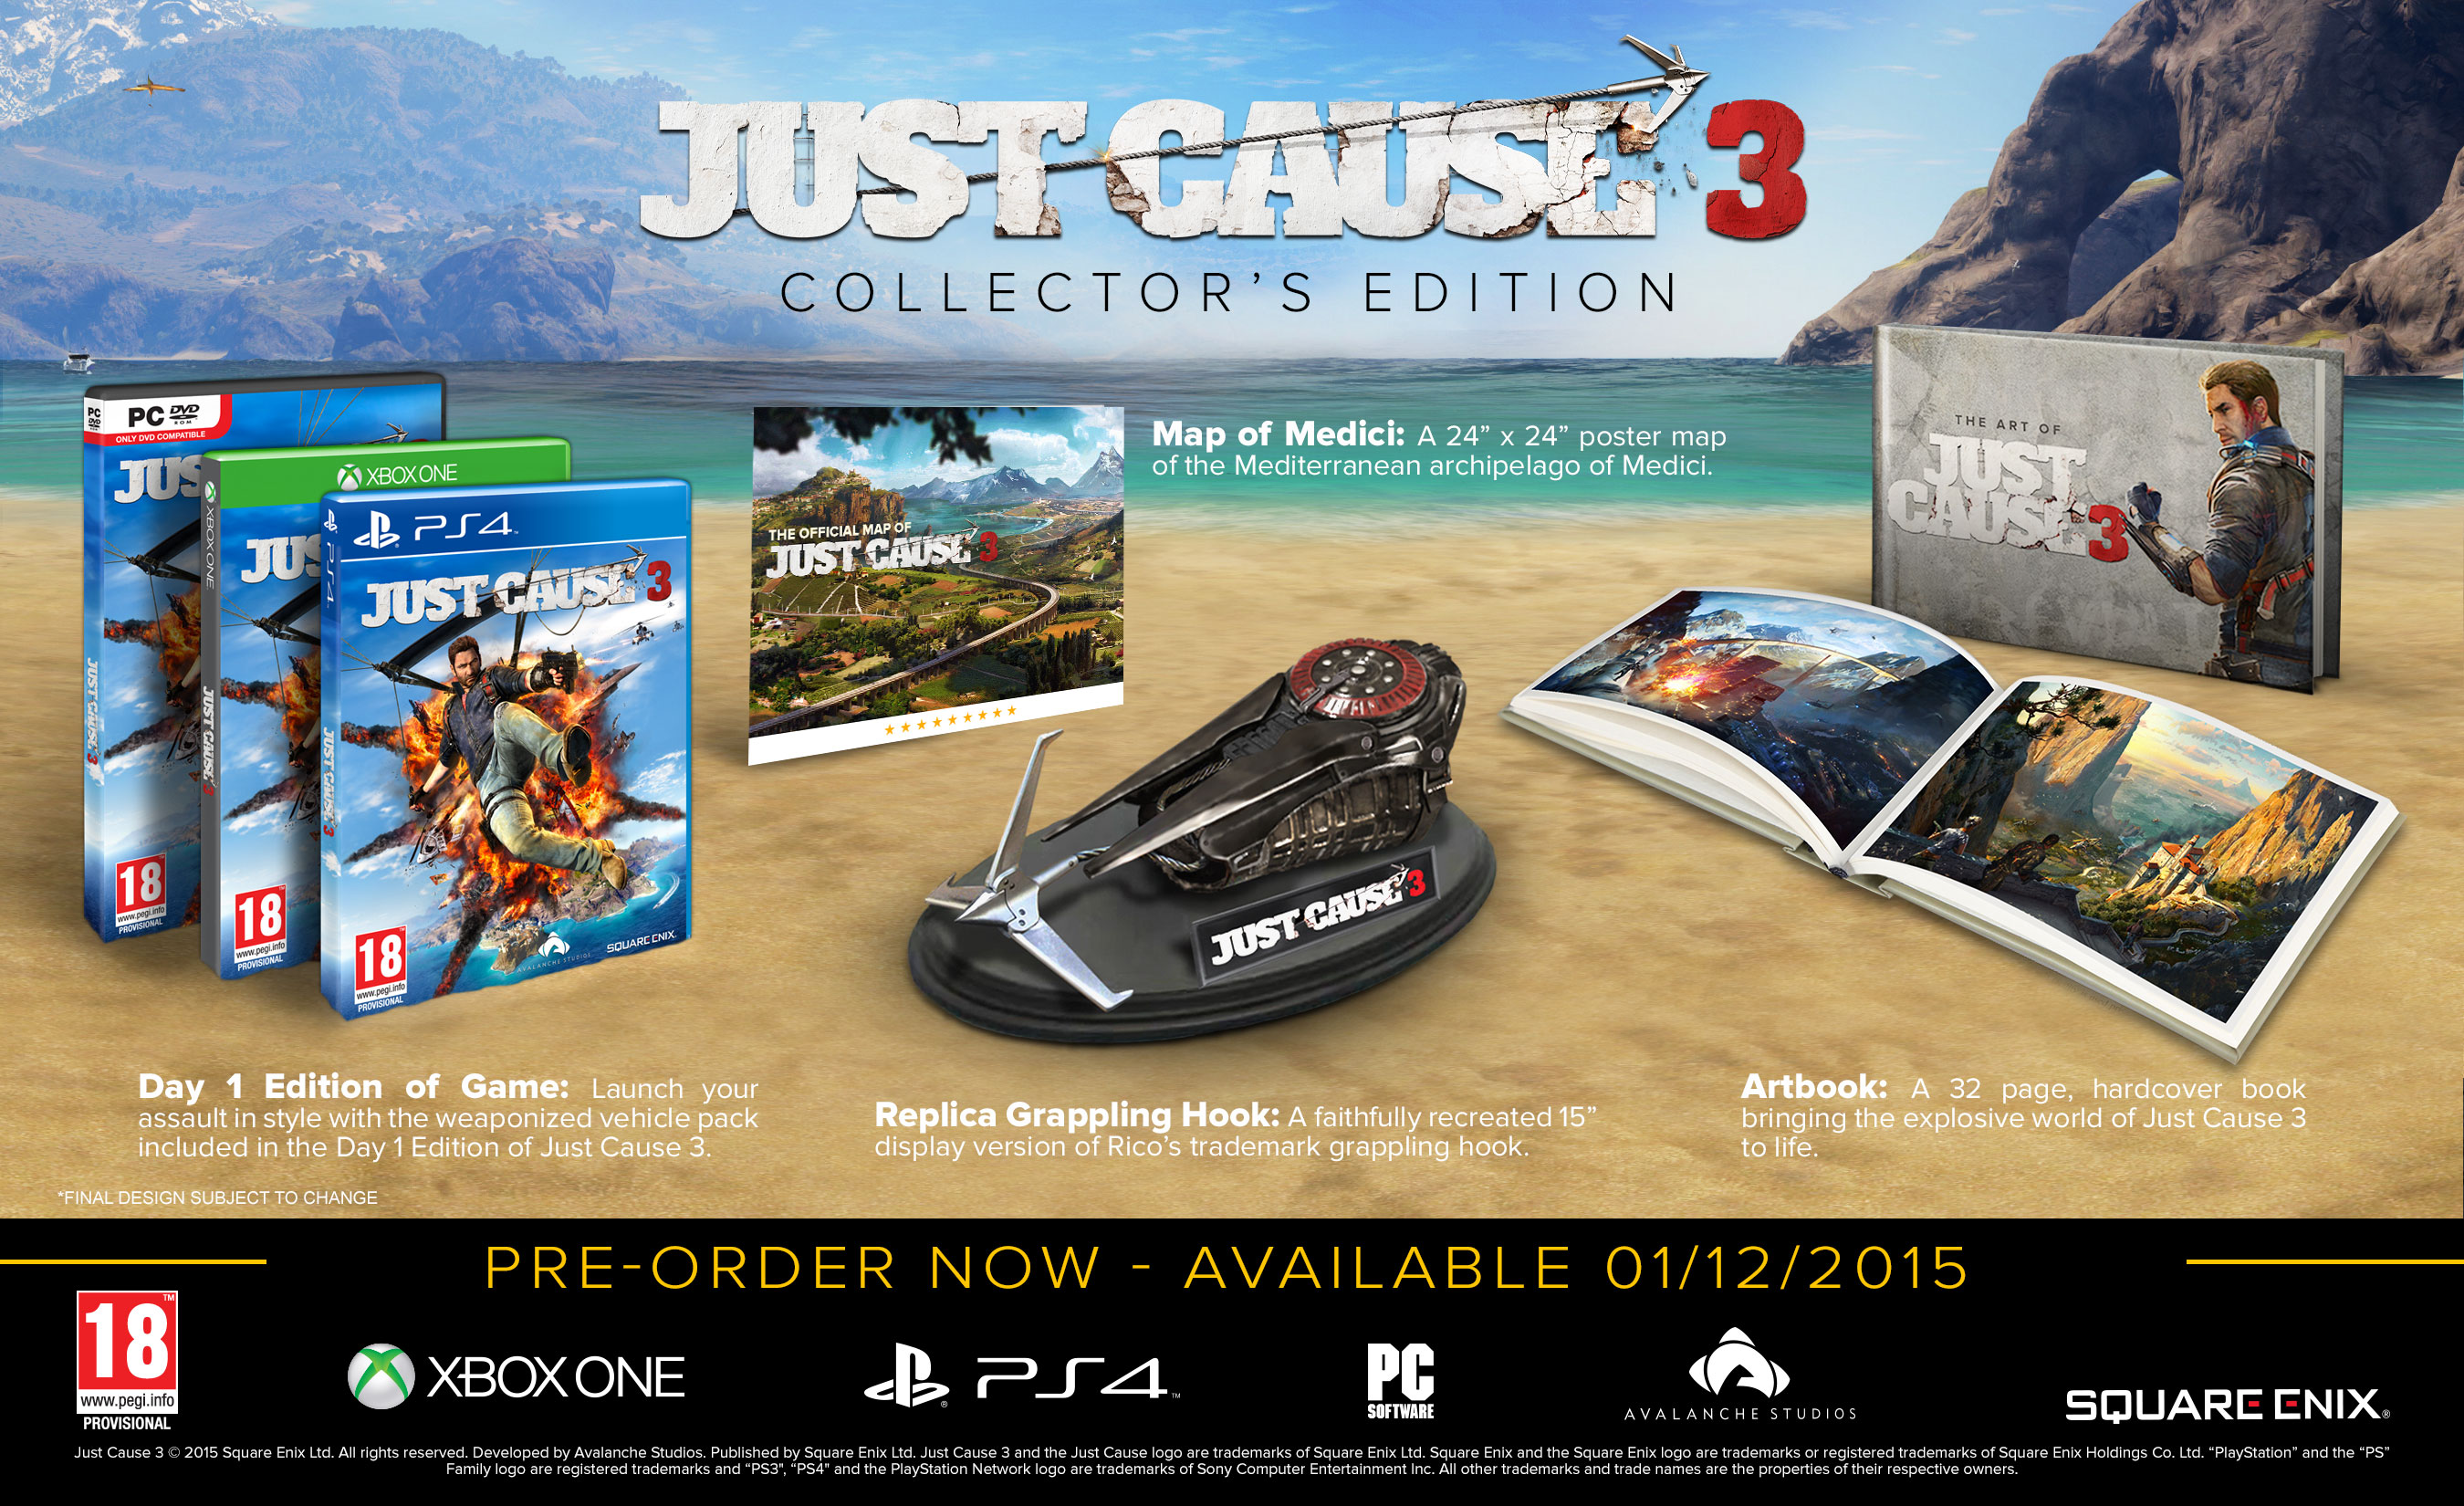 Ps4 just cause 3 collector's edition shopitree. Com.